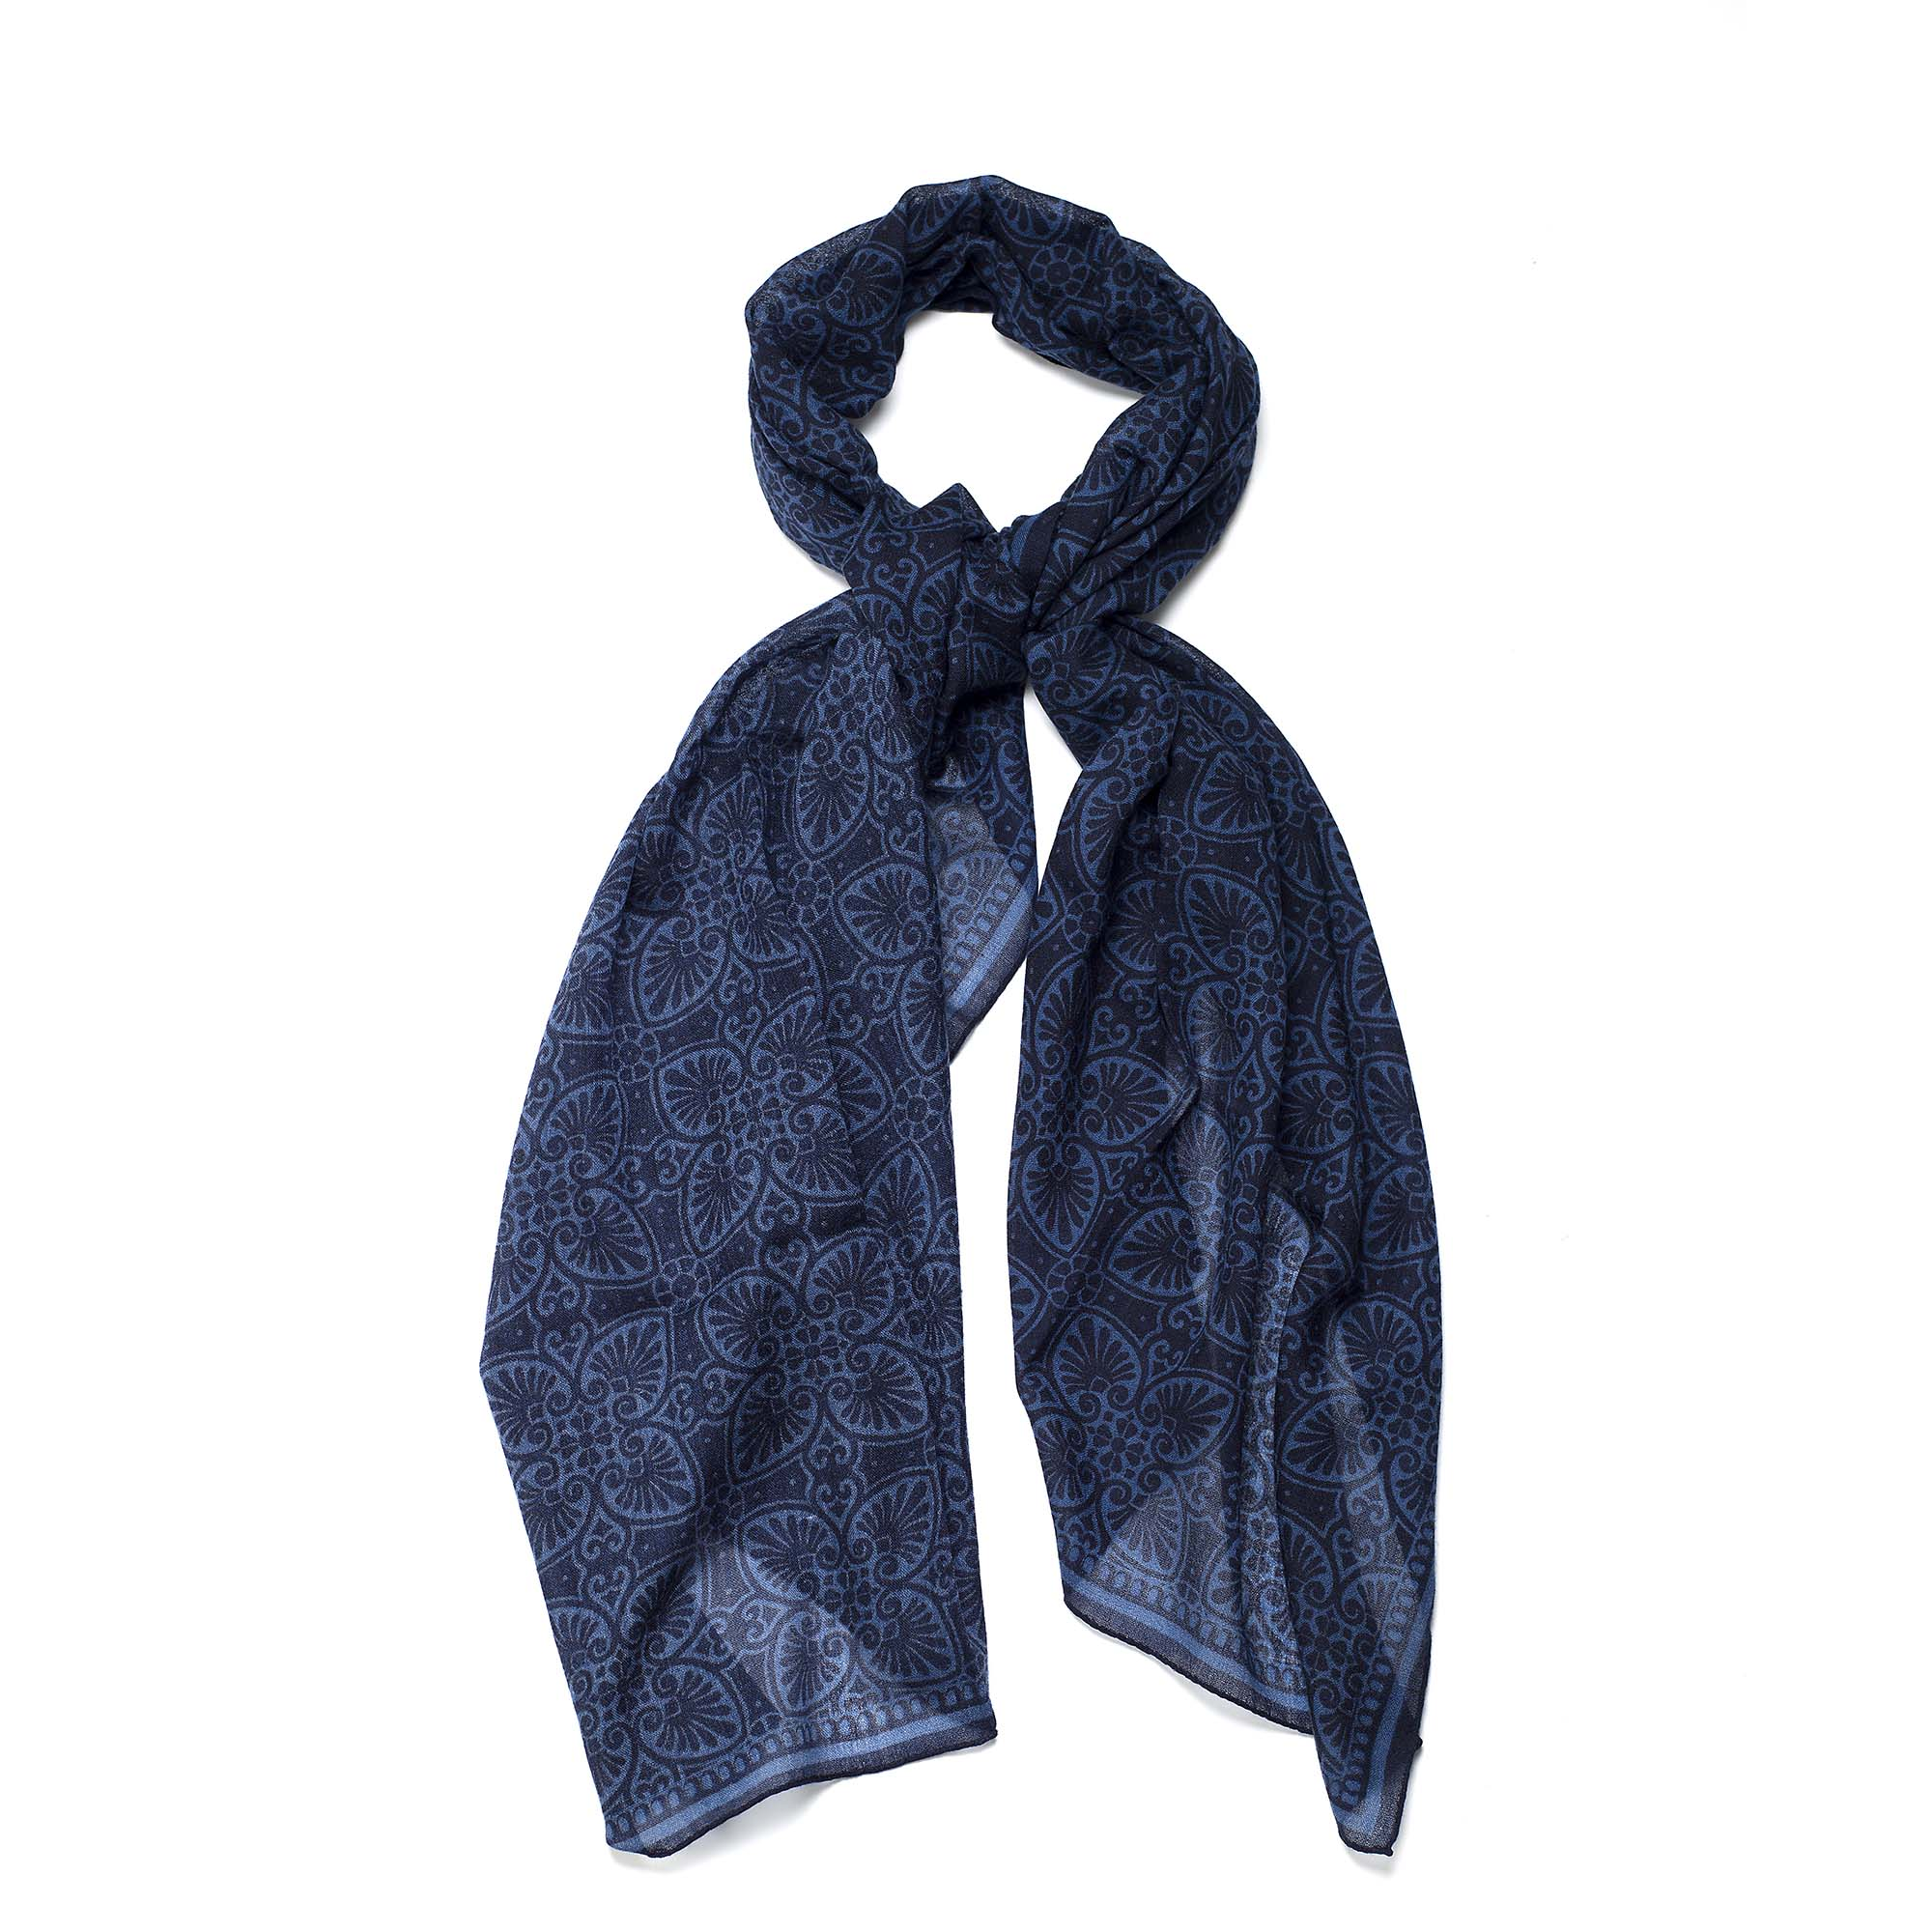 Dark blue wool scarf